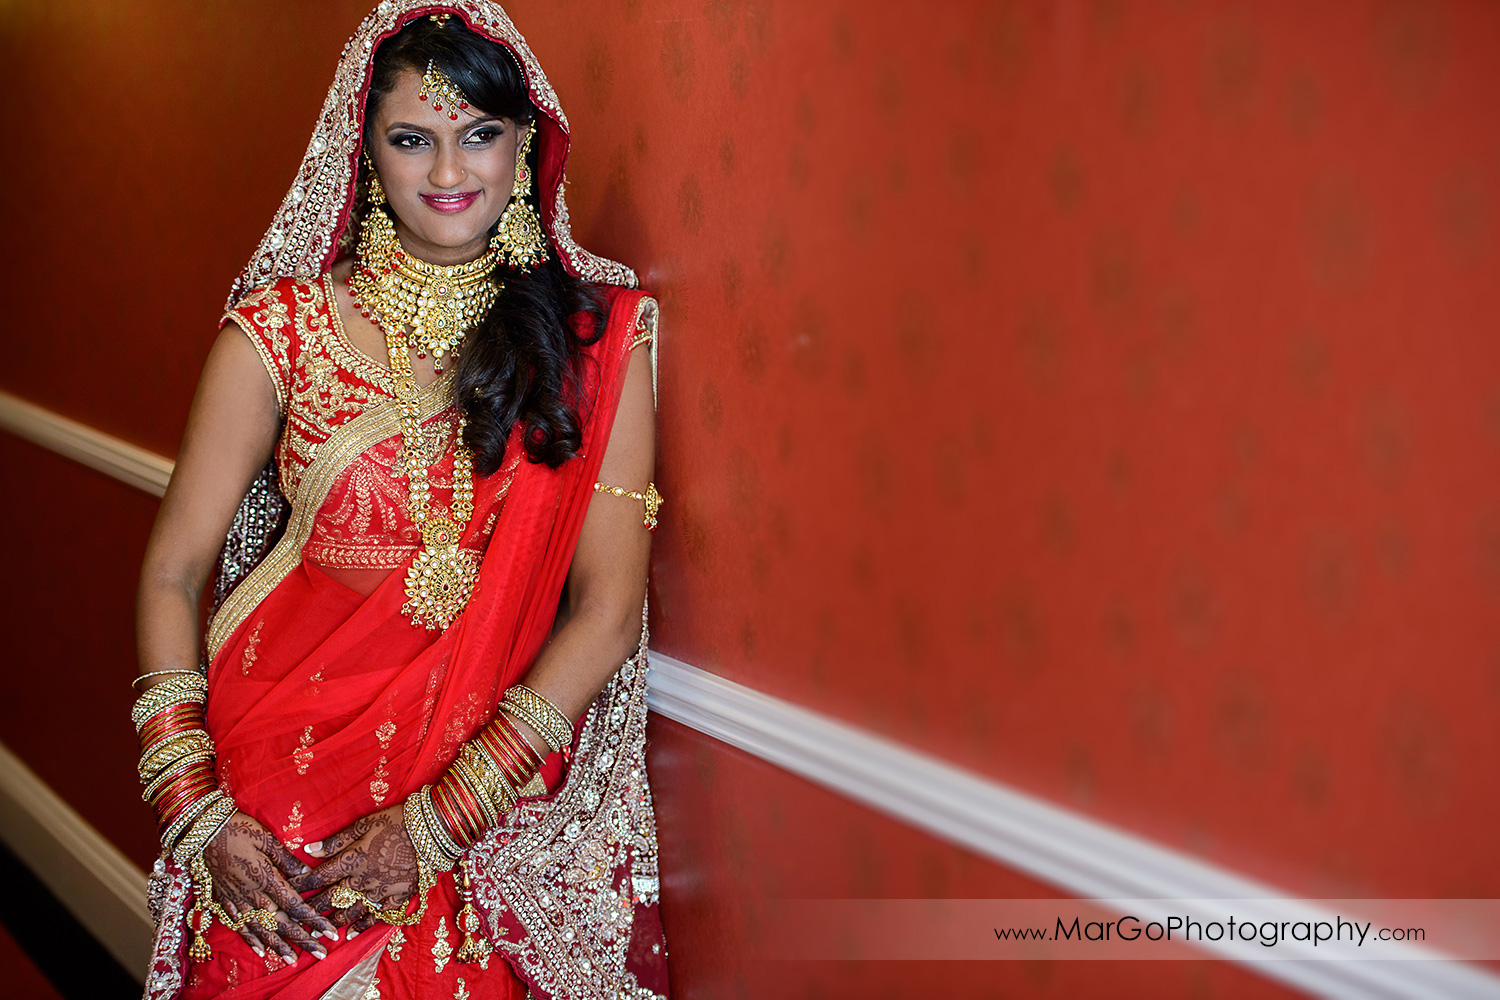 portrait of the indian bride on the red wall at Hotel Shattuck Plaza in Berkeley